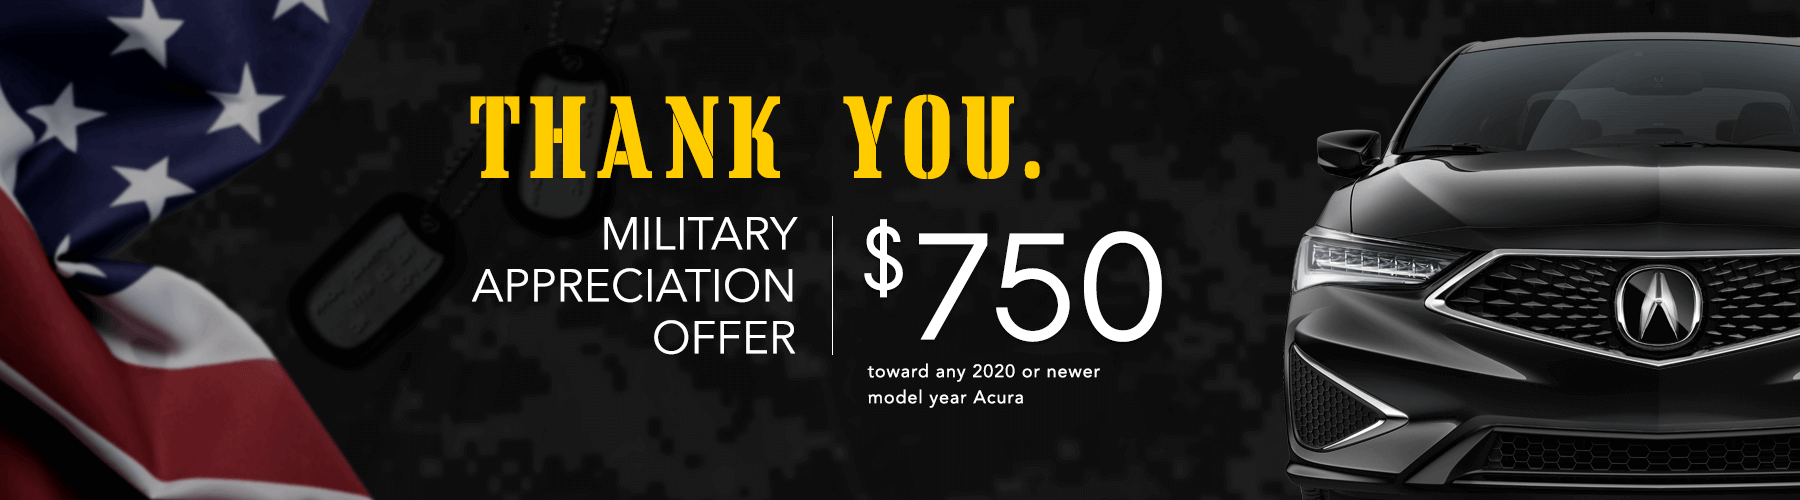 2020 Acura Military Appreciation Offer Banner